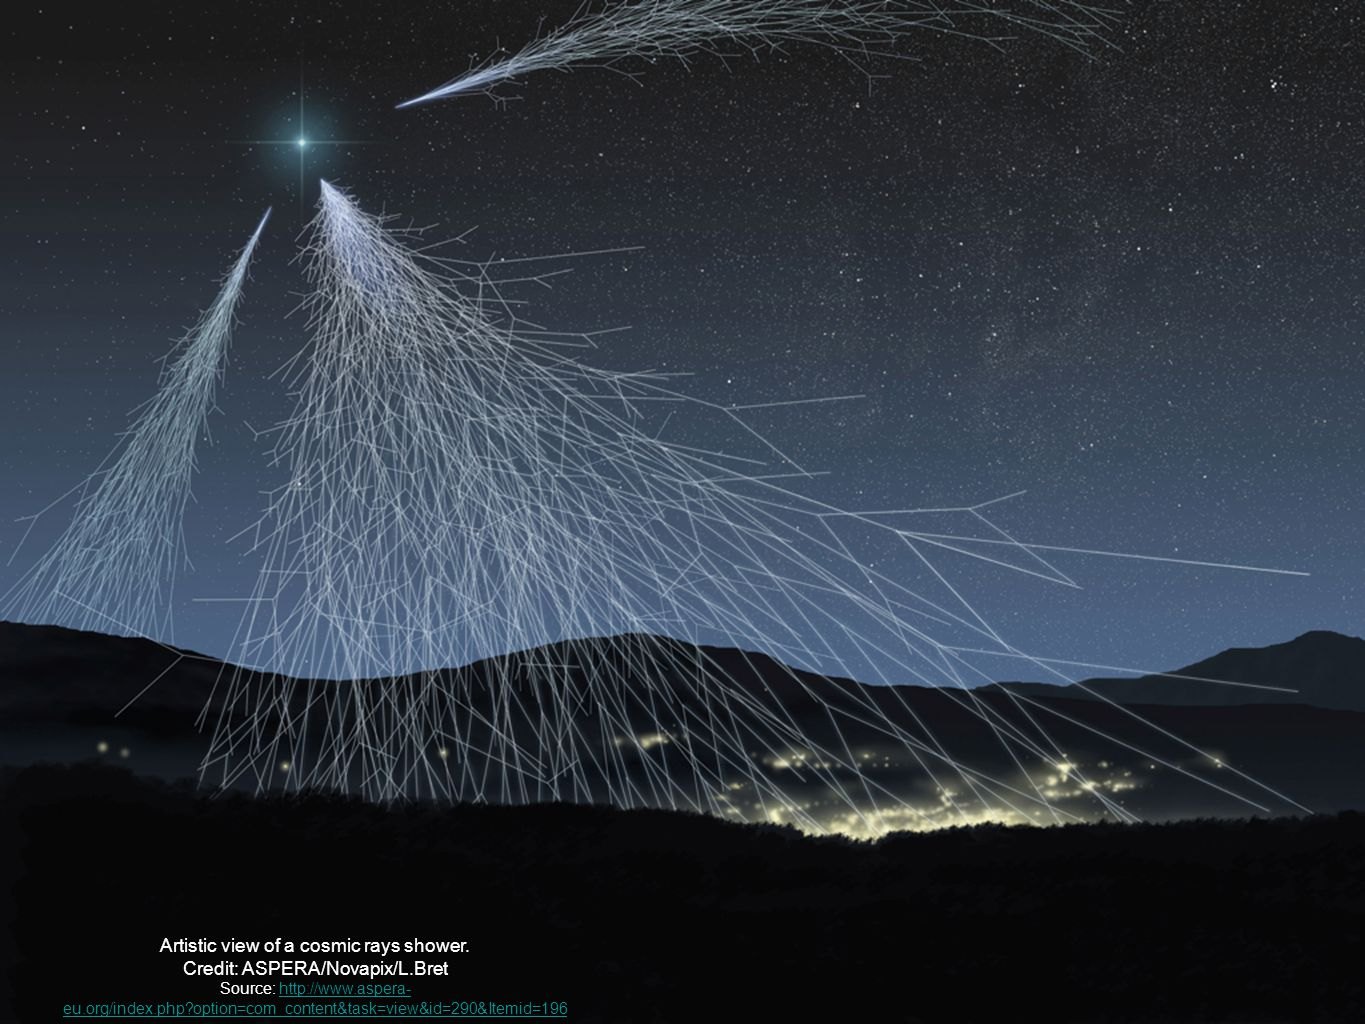 4 High energy cosmic rays striking atoms at the top of the atmosphere give the rise to showers of particles striking the Earth s surface Source: http://cds.cern.ch/record/40407http://cds.cern.ch/record/40407